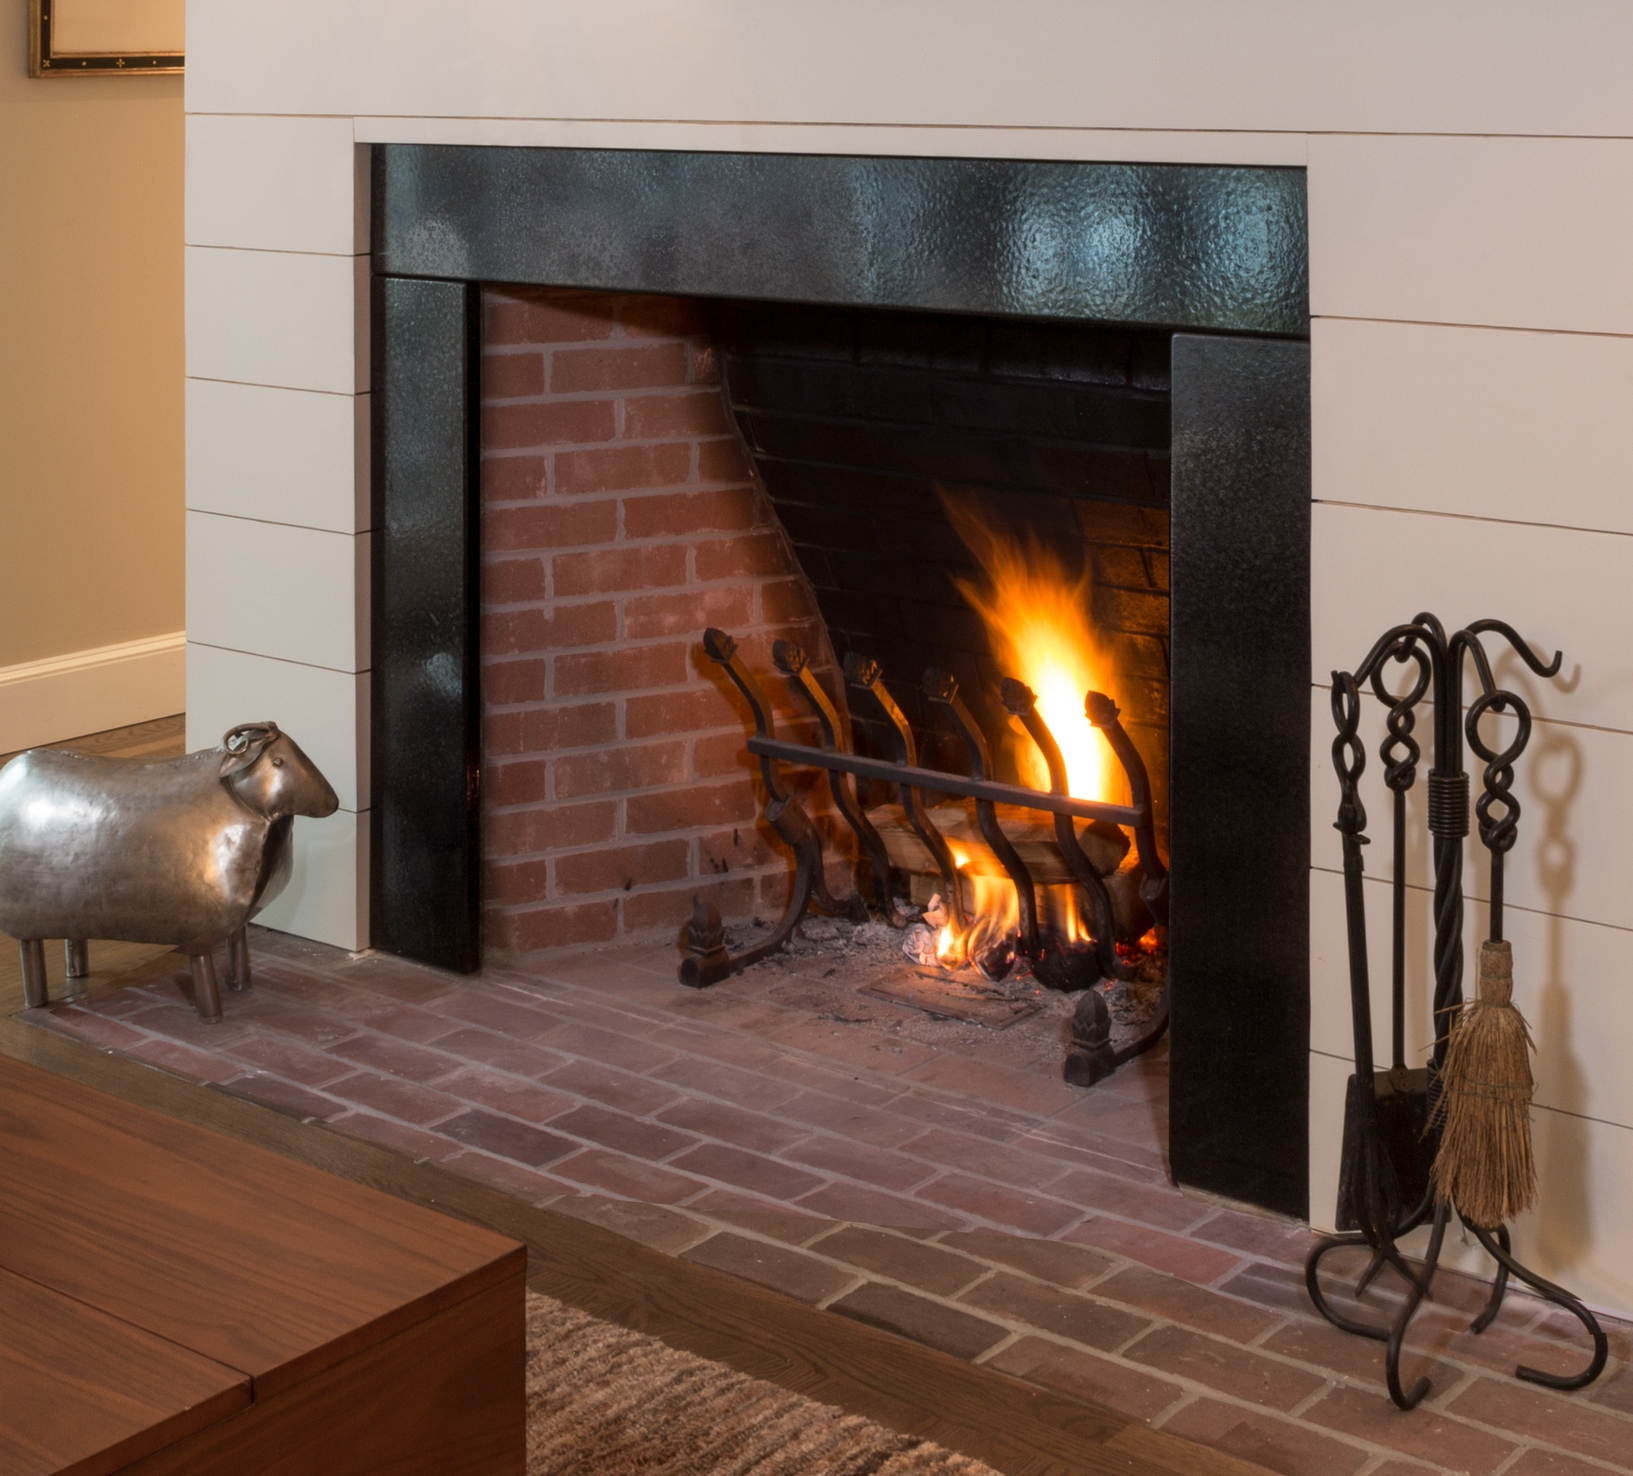 Fireplace surround, Metallico glaze. Private residence, Cohasset, MA.